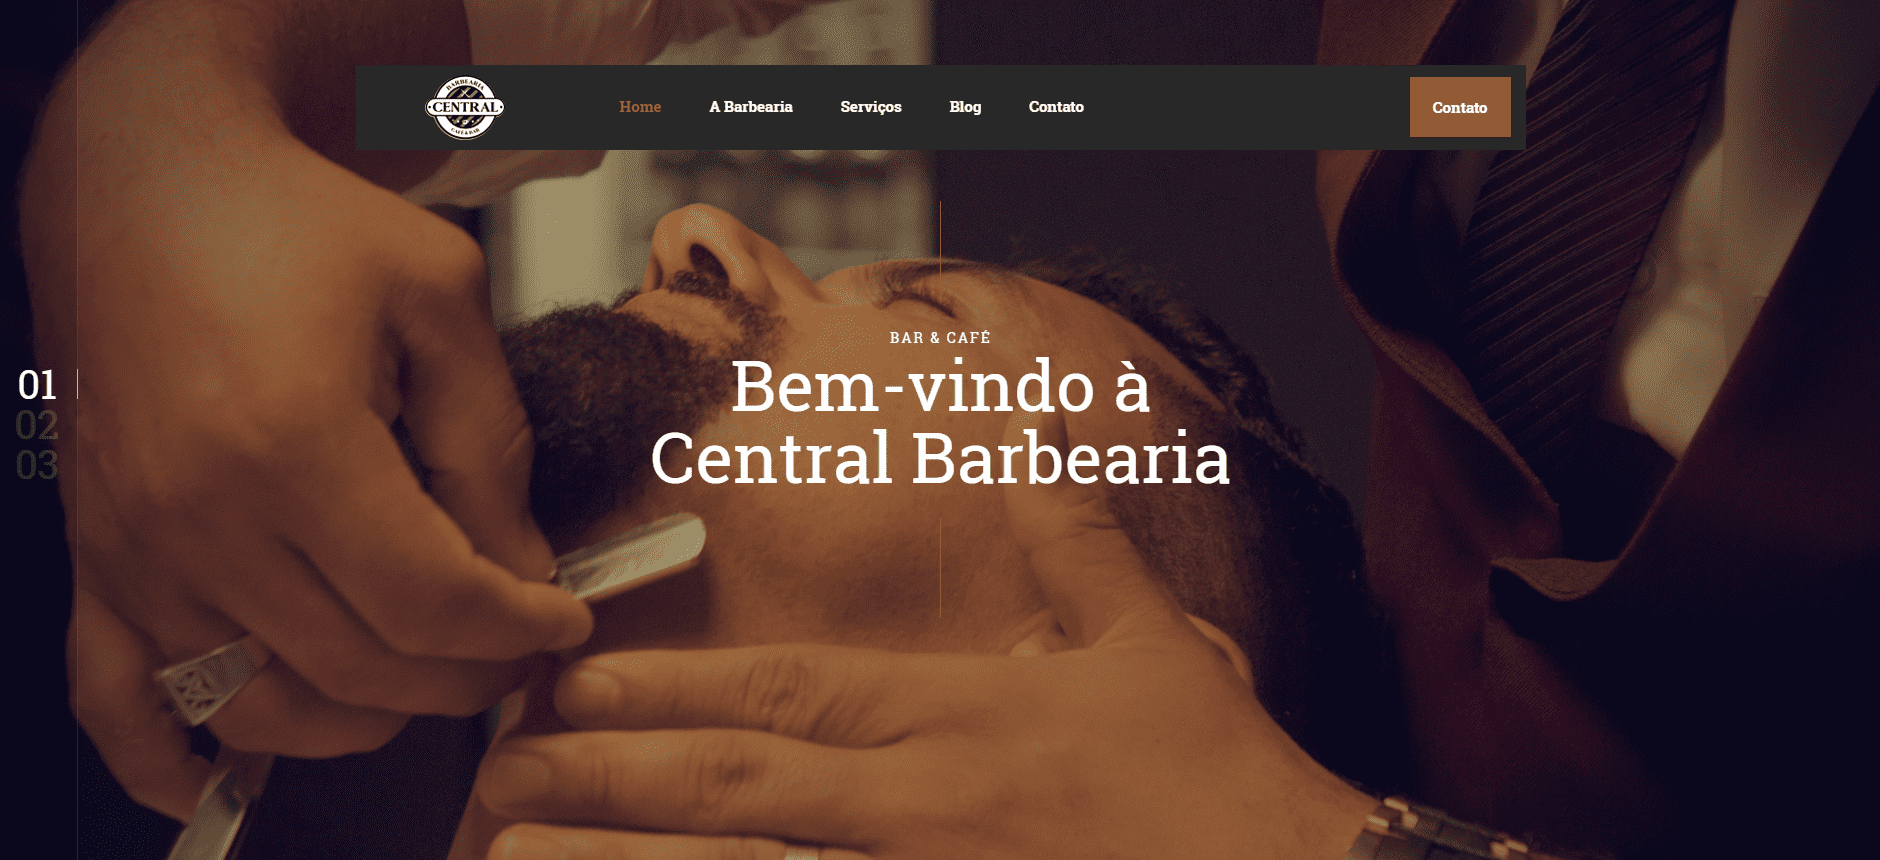 //insidedigital.com.br/wp-content/uploads/2017/08/Central-barbearia.png